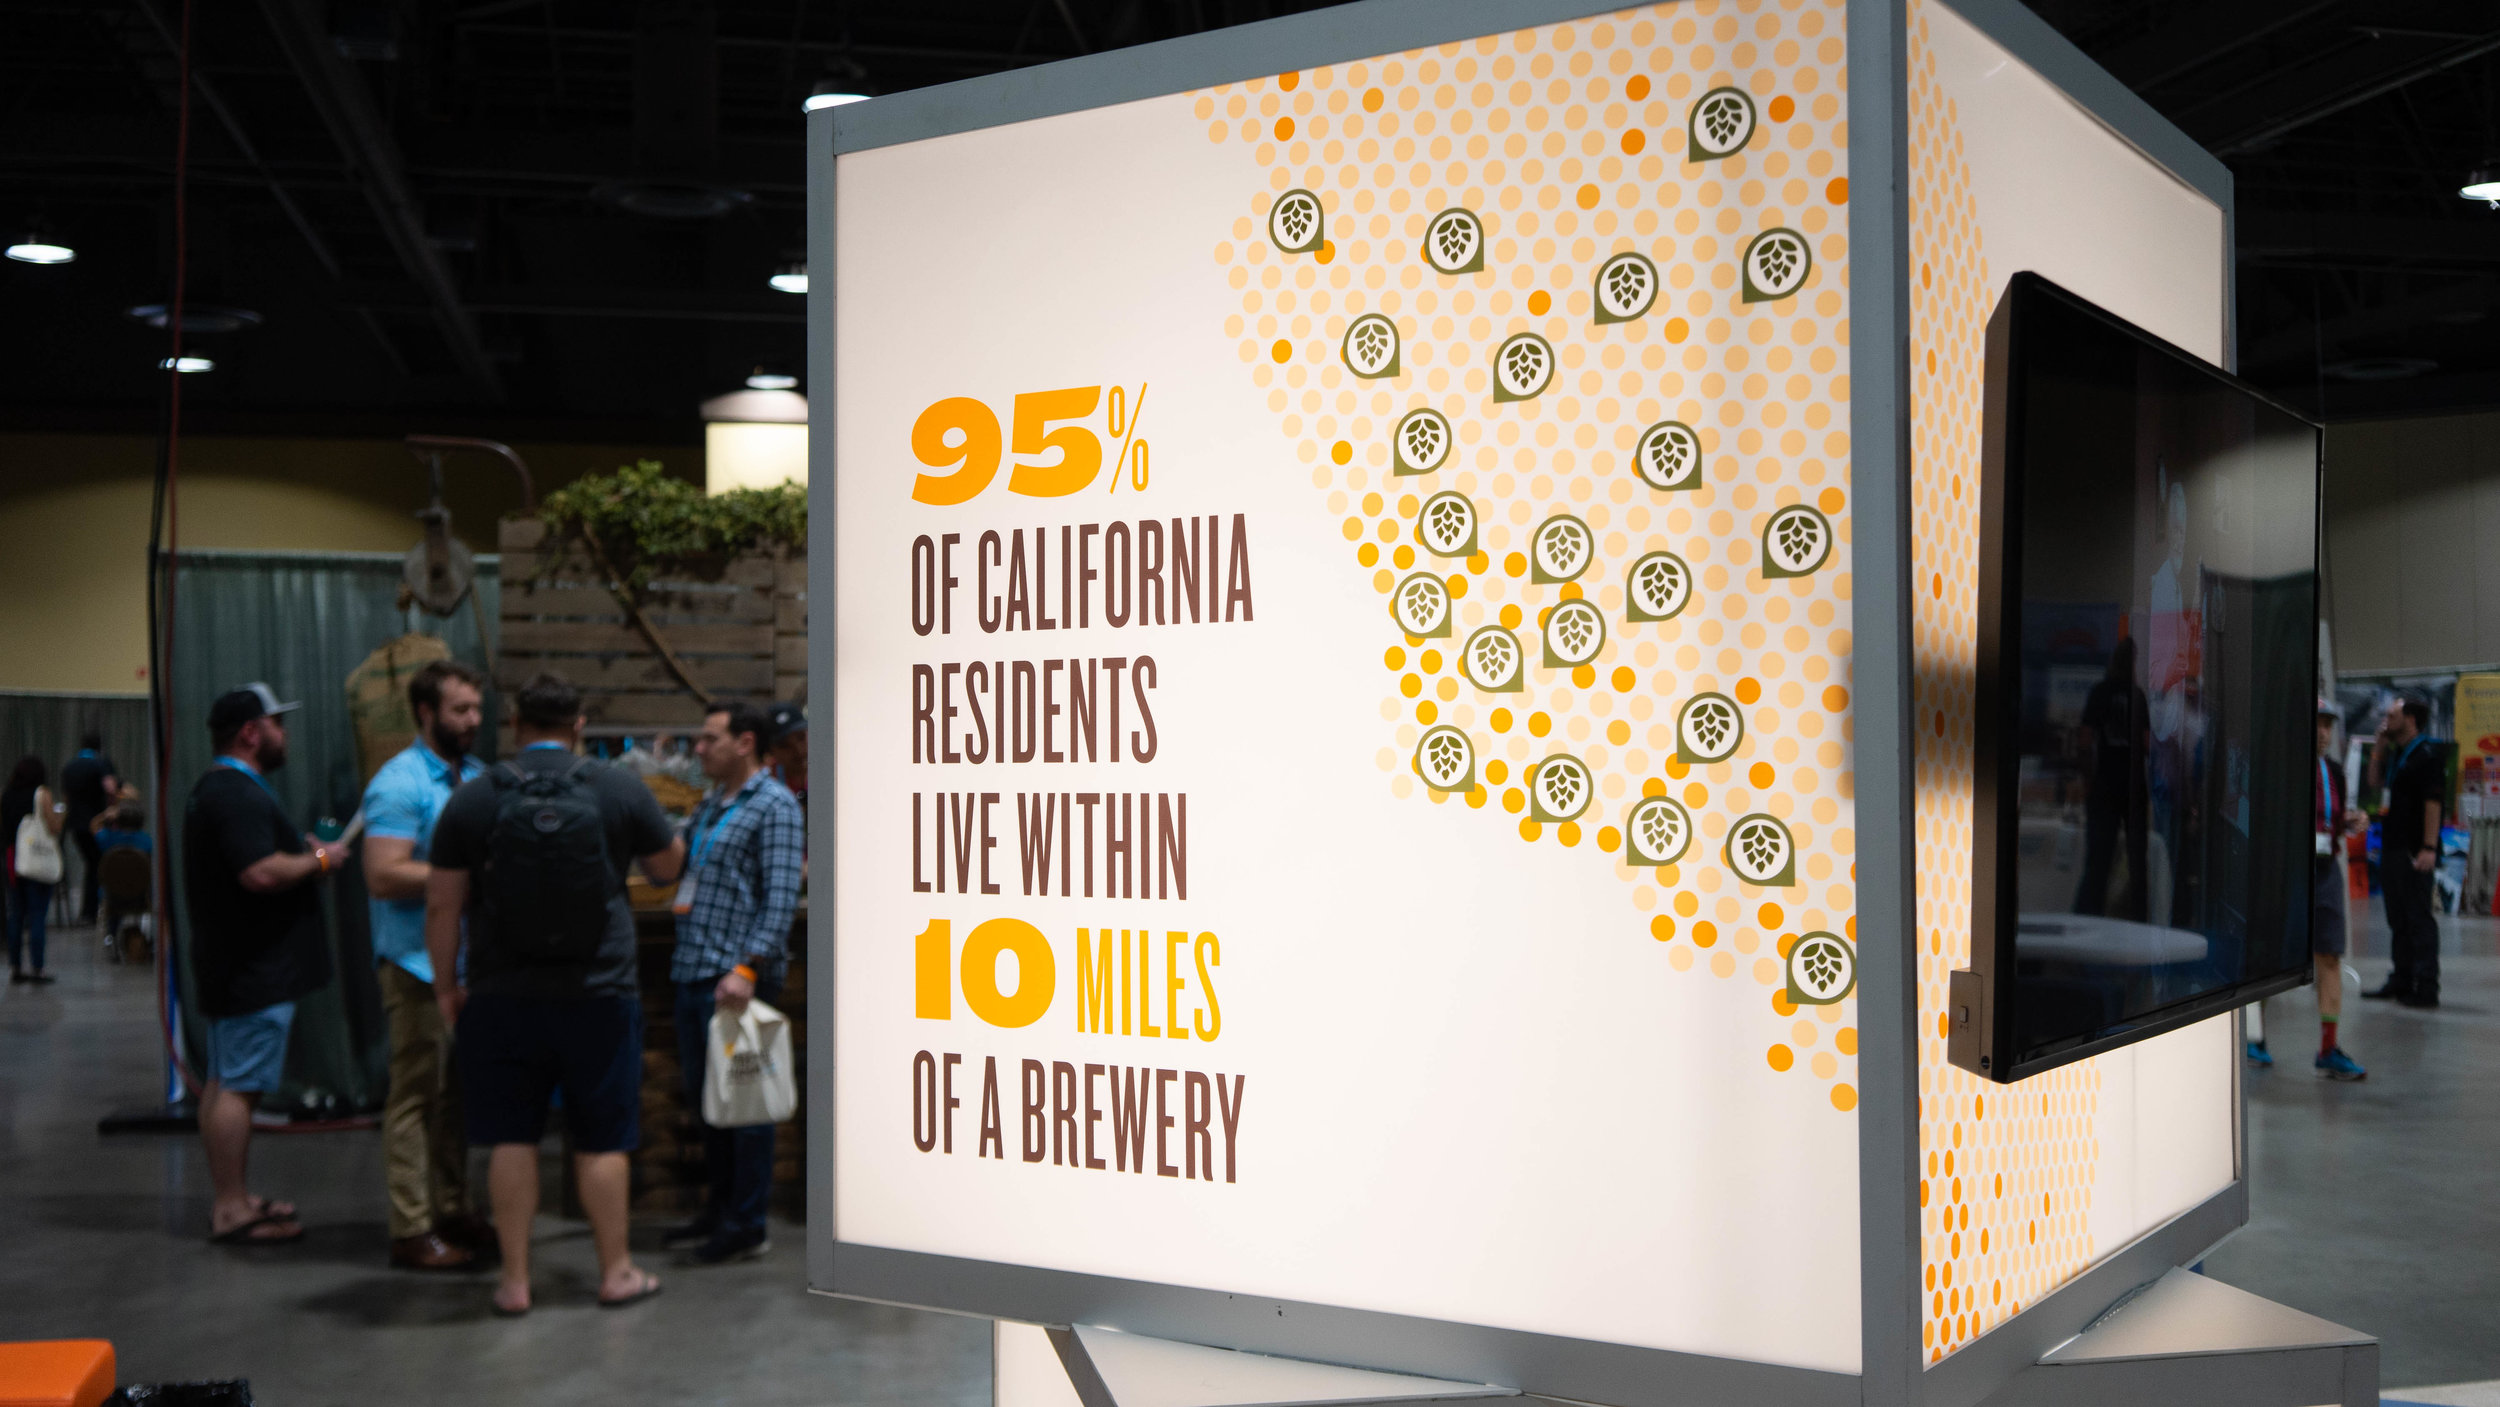 The California Craft Beer Summit came to Long Beach to highlight the industry.